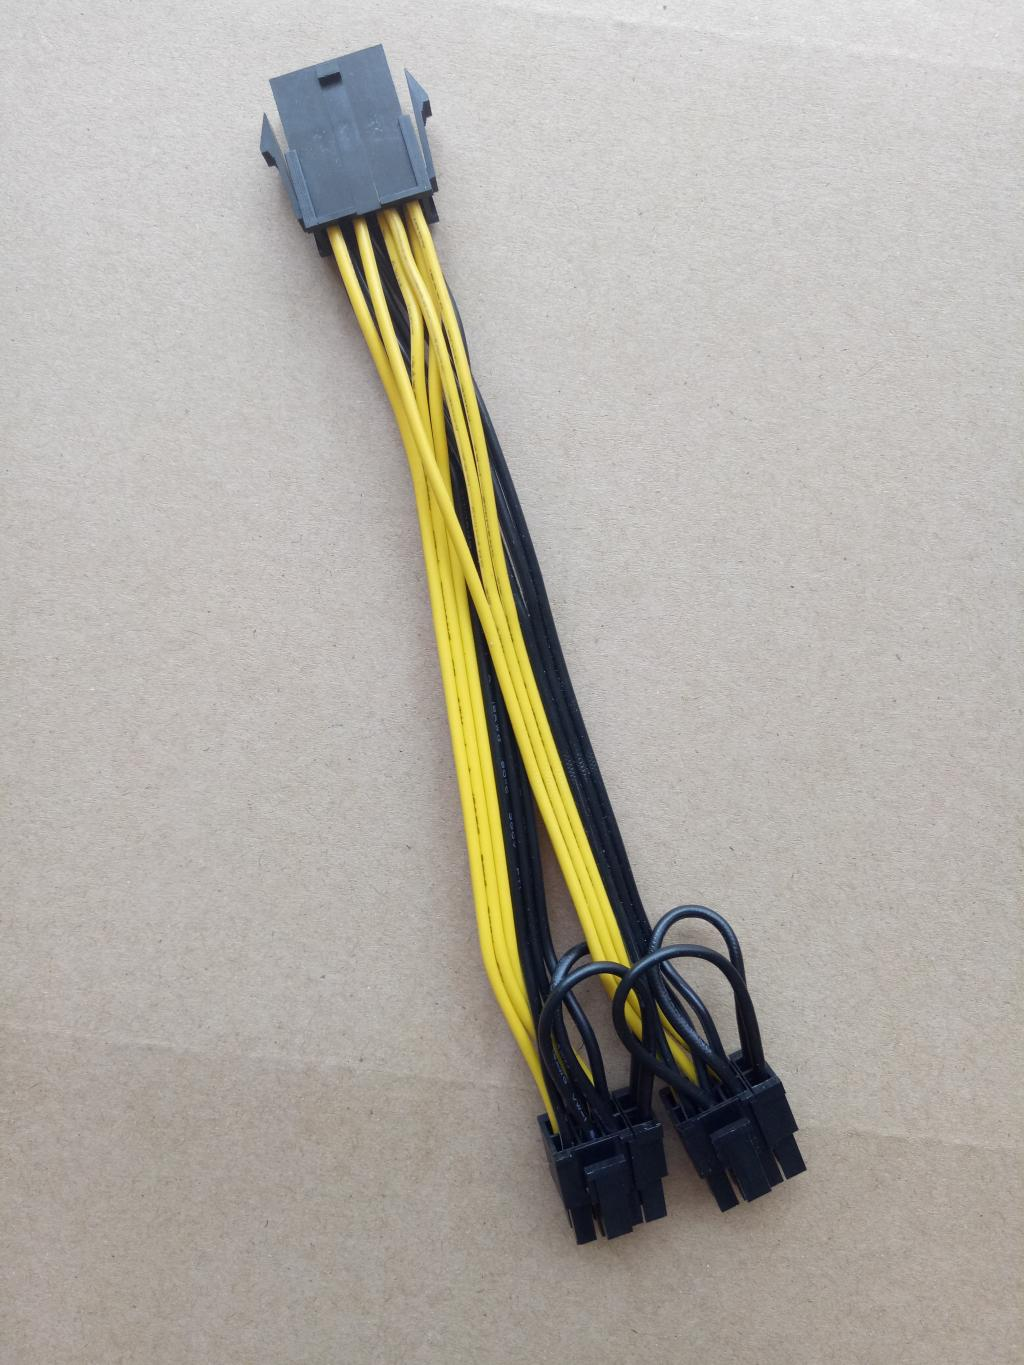 small resolution of 8pin to 2x 8 pin cable wierd cable configuration is this correct tom s hardware forum